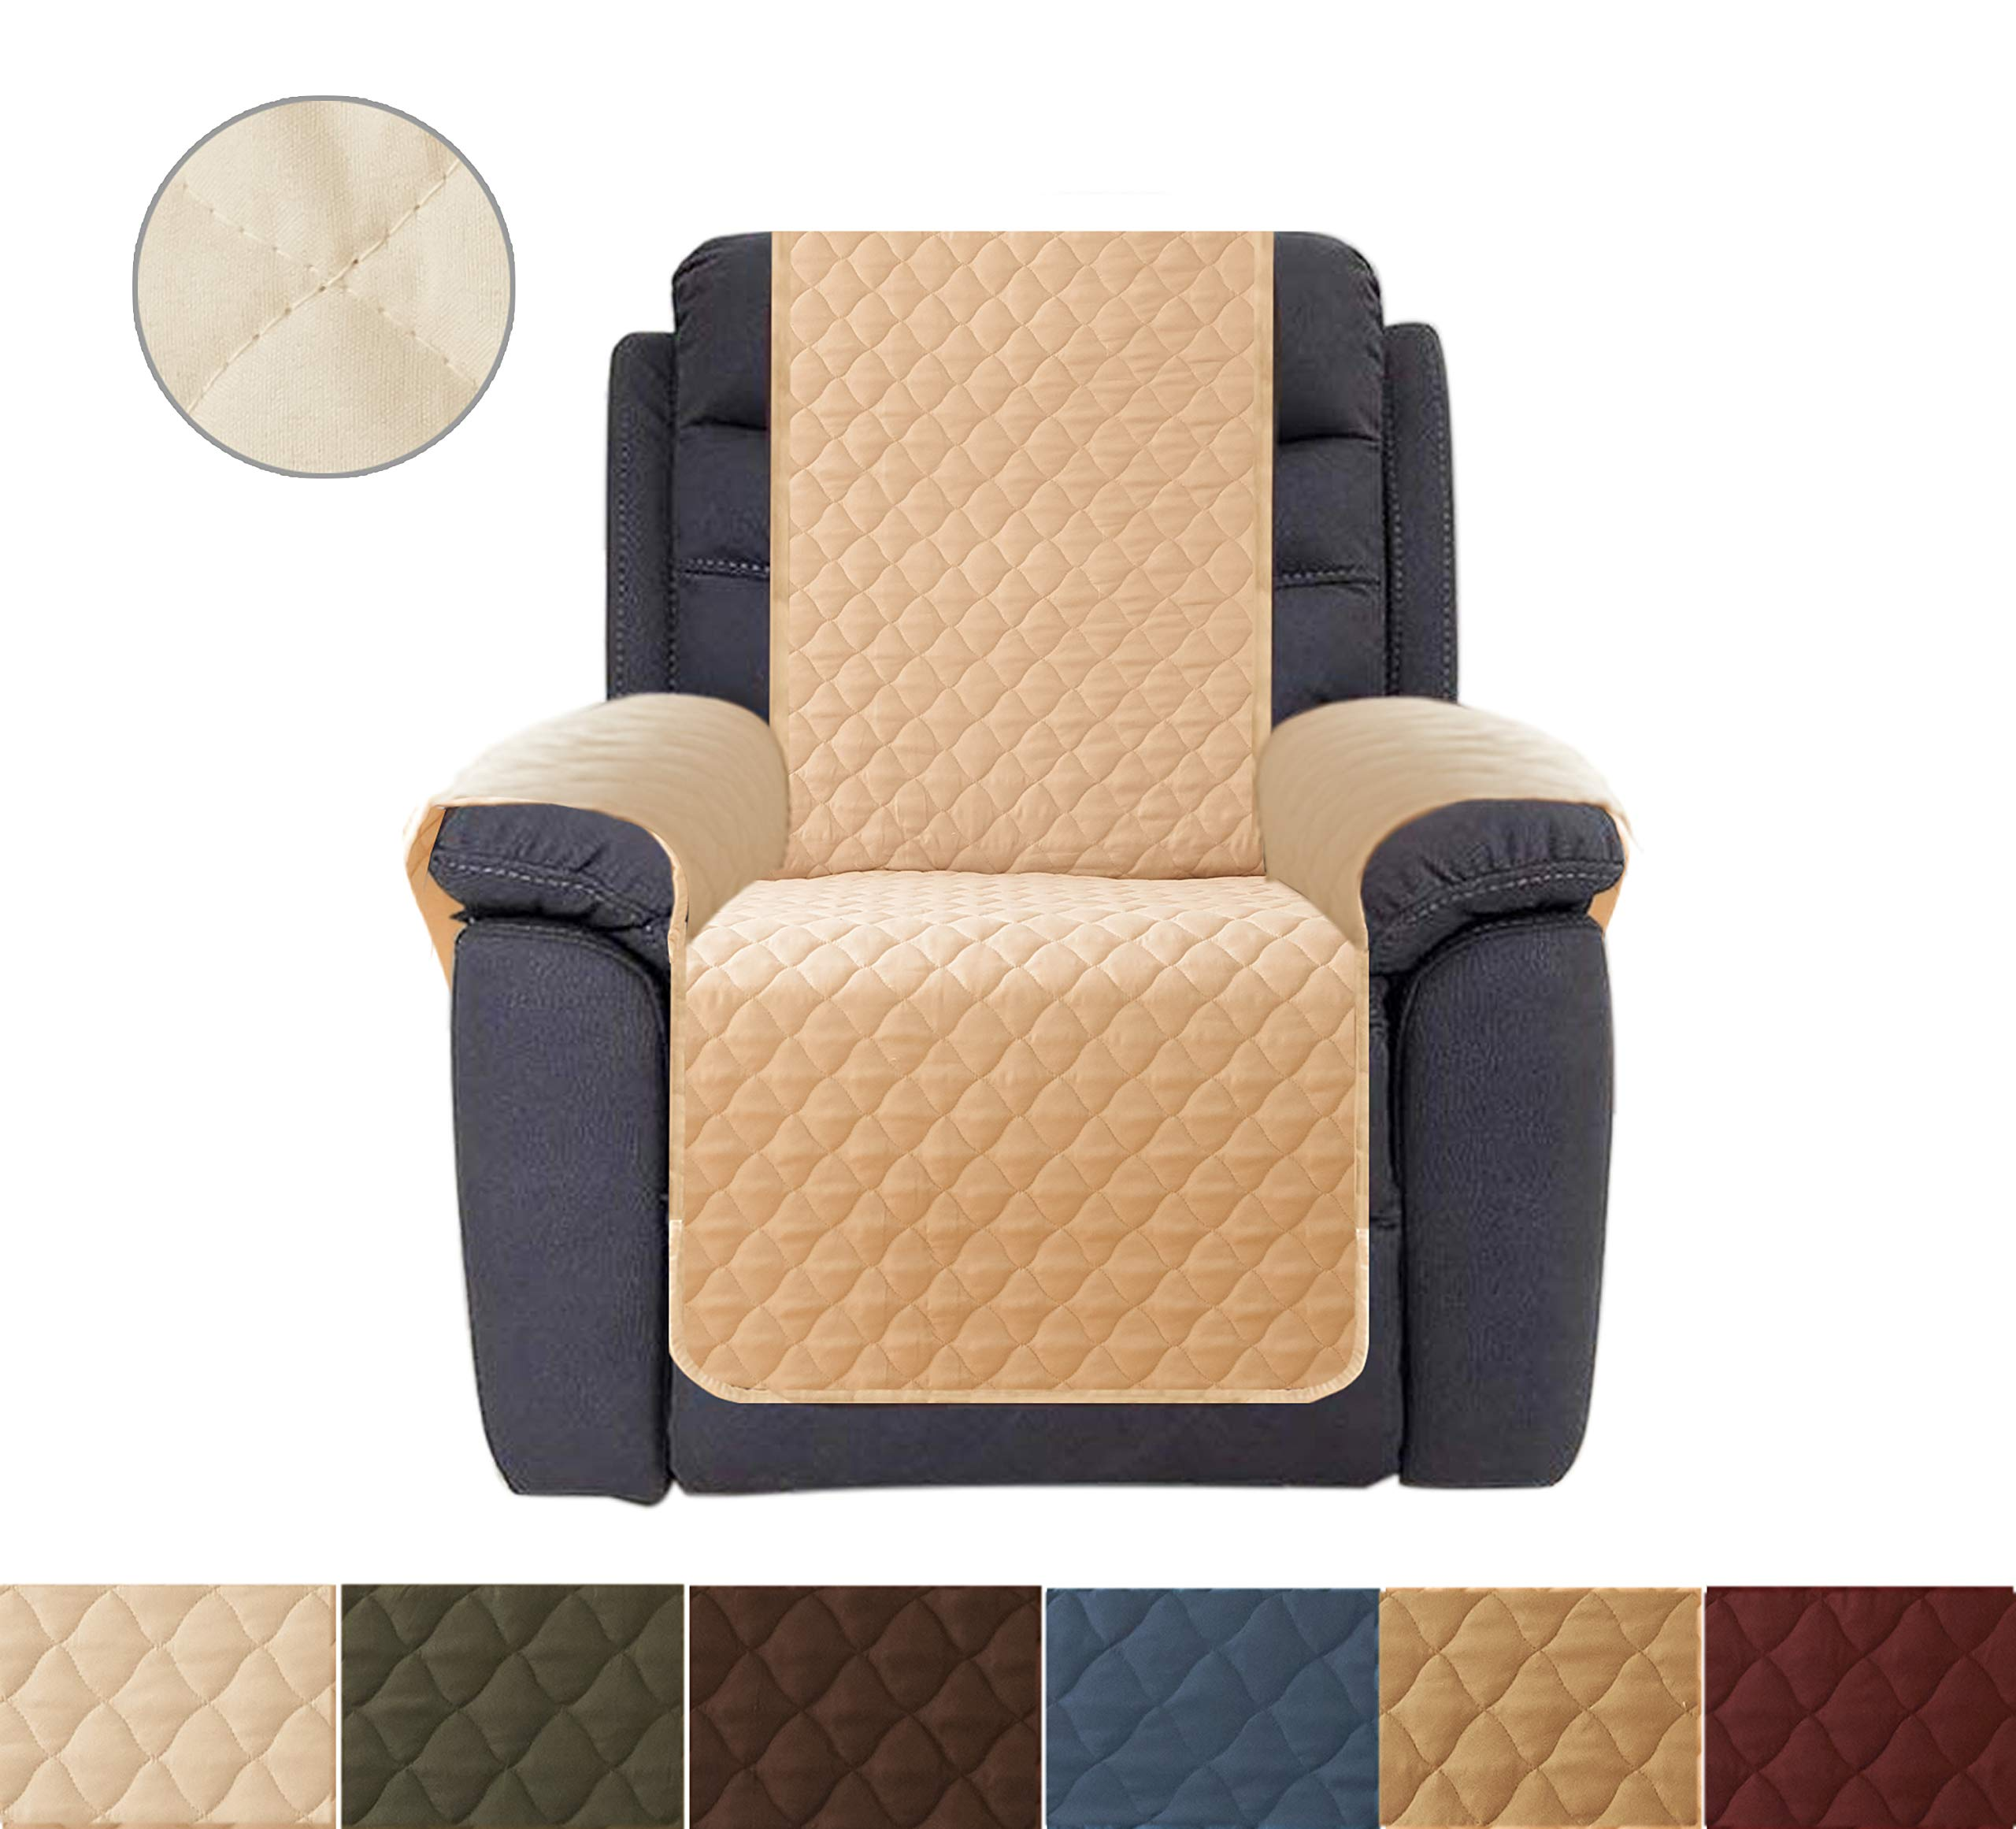 Ameritex Sofa Cover, Reversible Quilted Furniture Protector, Ideal Loveseat Slipcovers for Pets & Children, Water Resistant, | Double line Checkered Grid Blue (Pattern1:Khaki/Beige, Recliner)